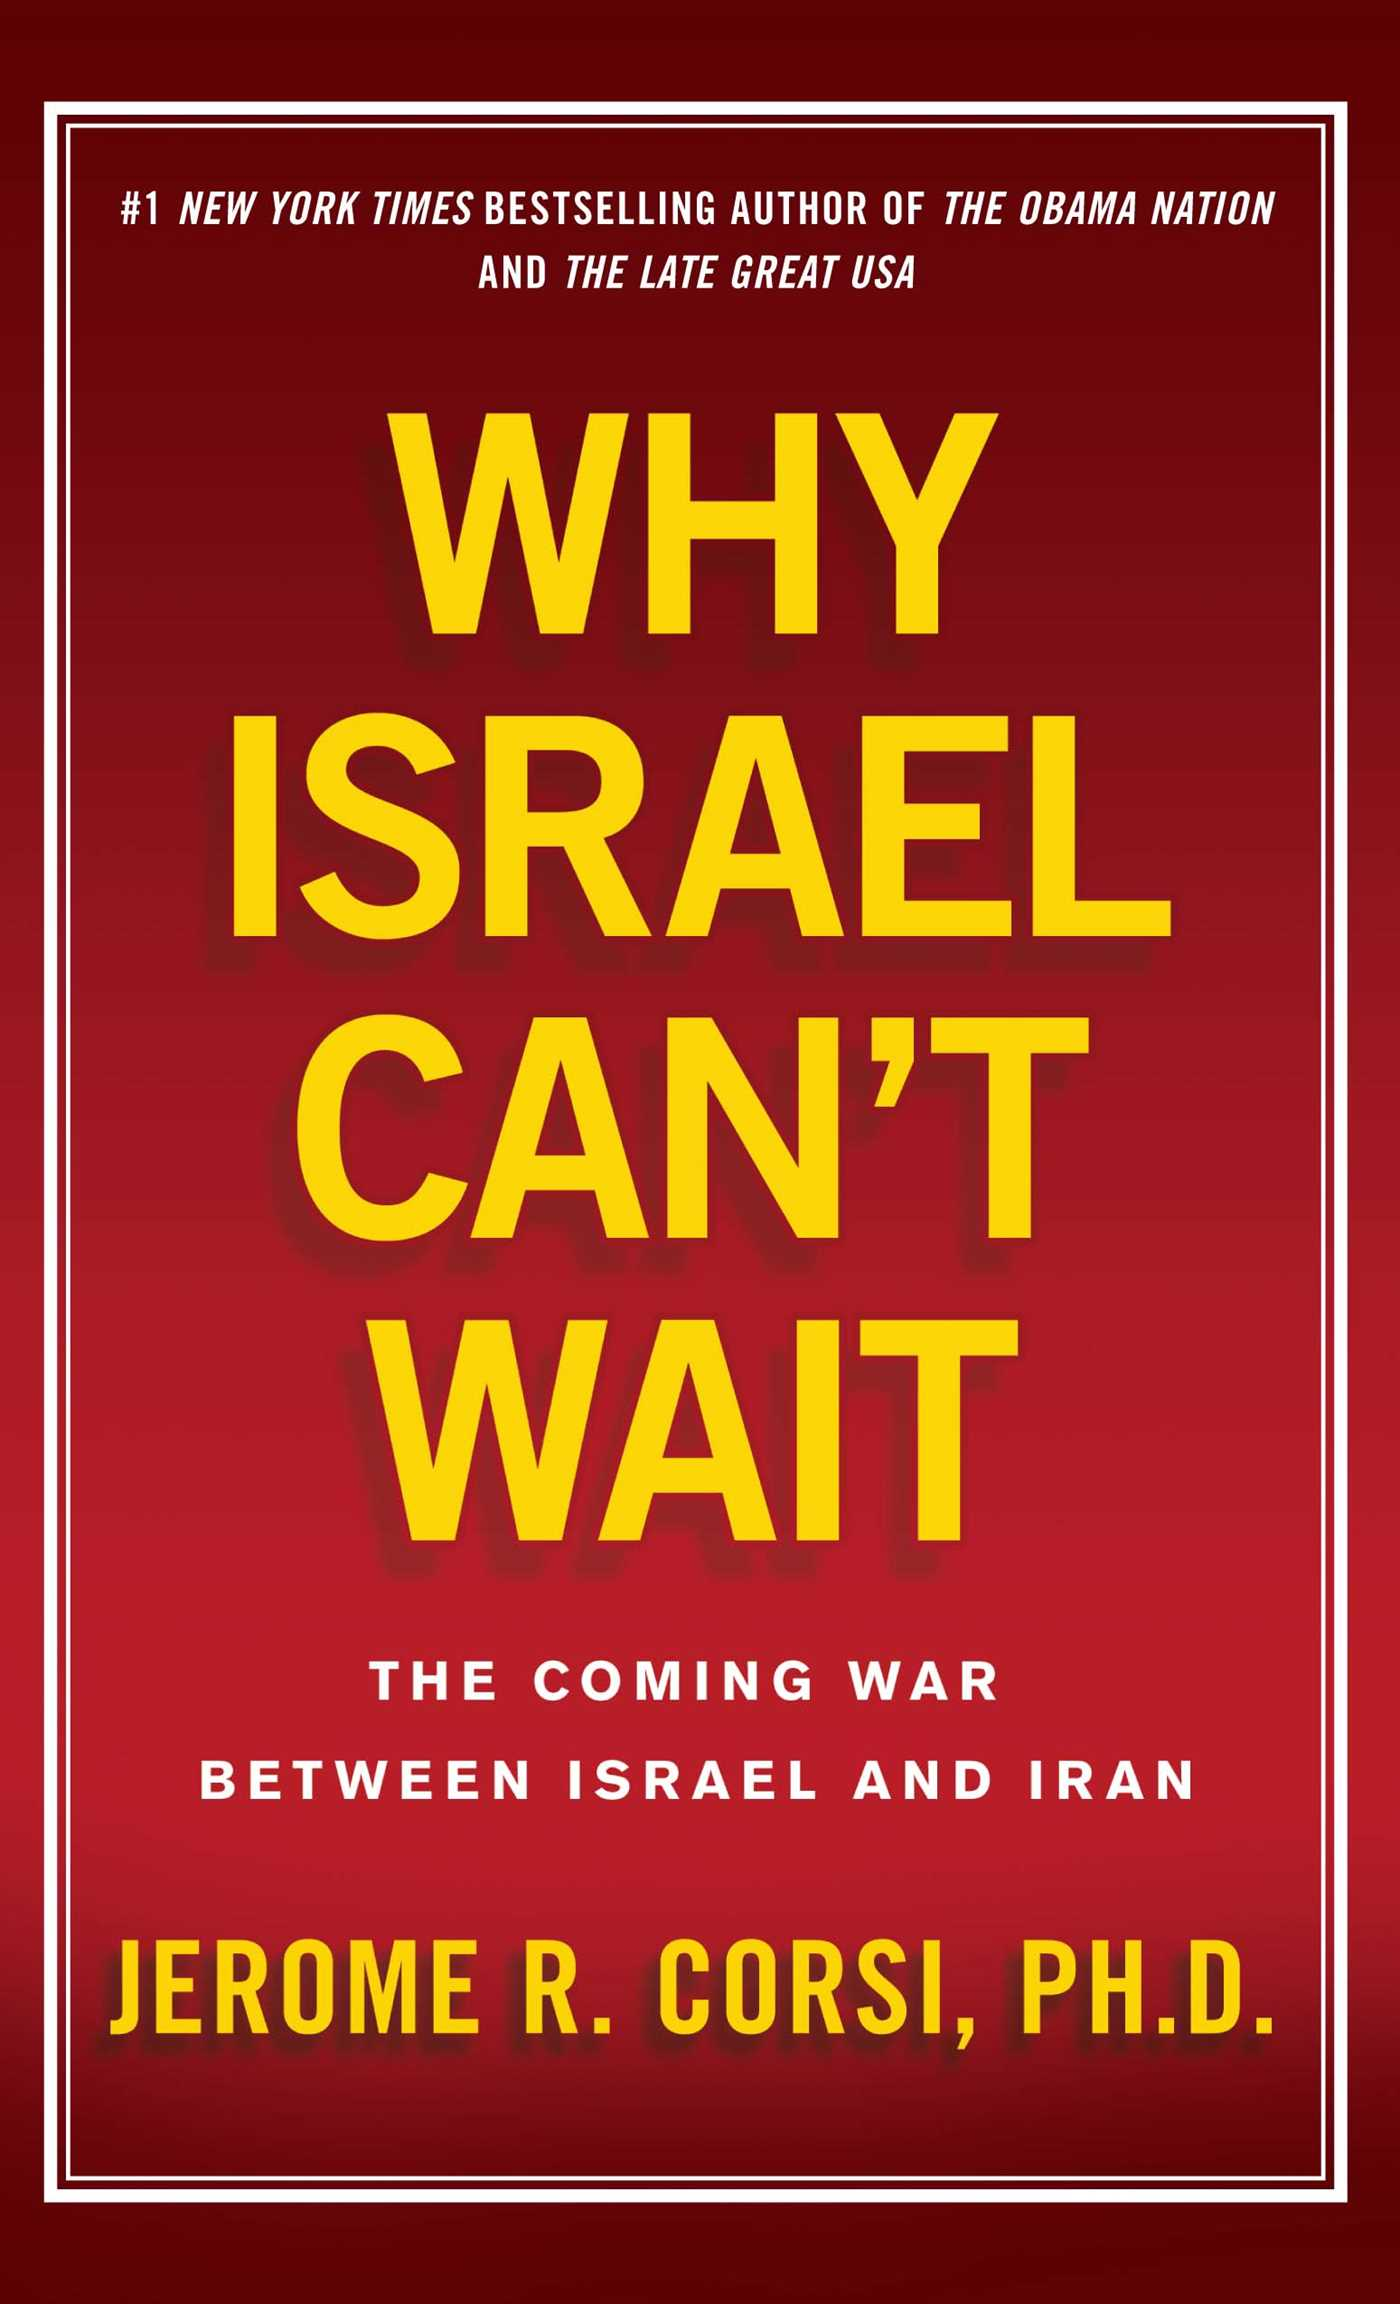 Why-israel-cant-wait-9781439183014_hr